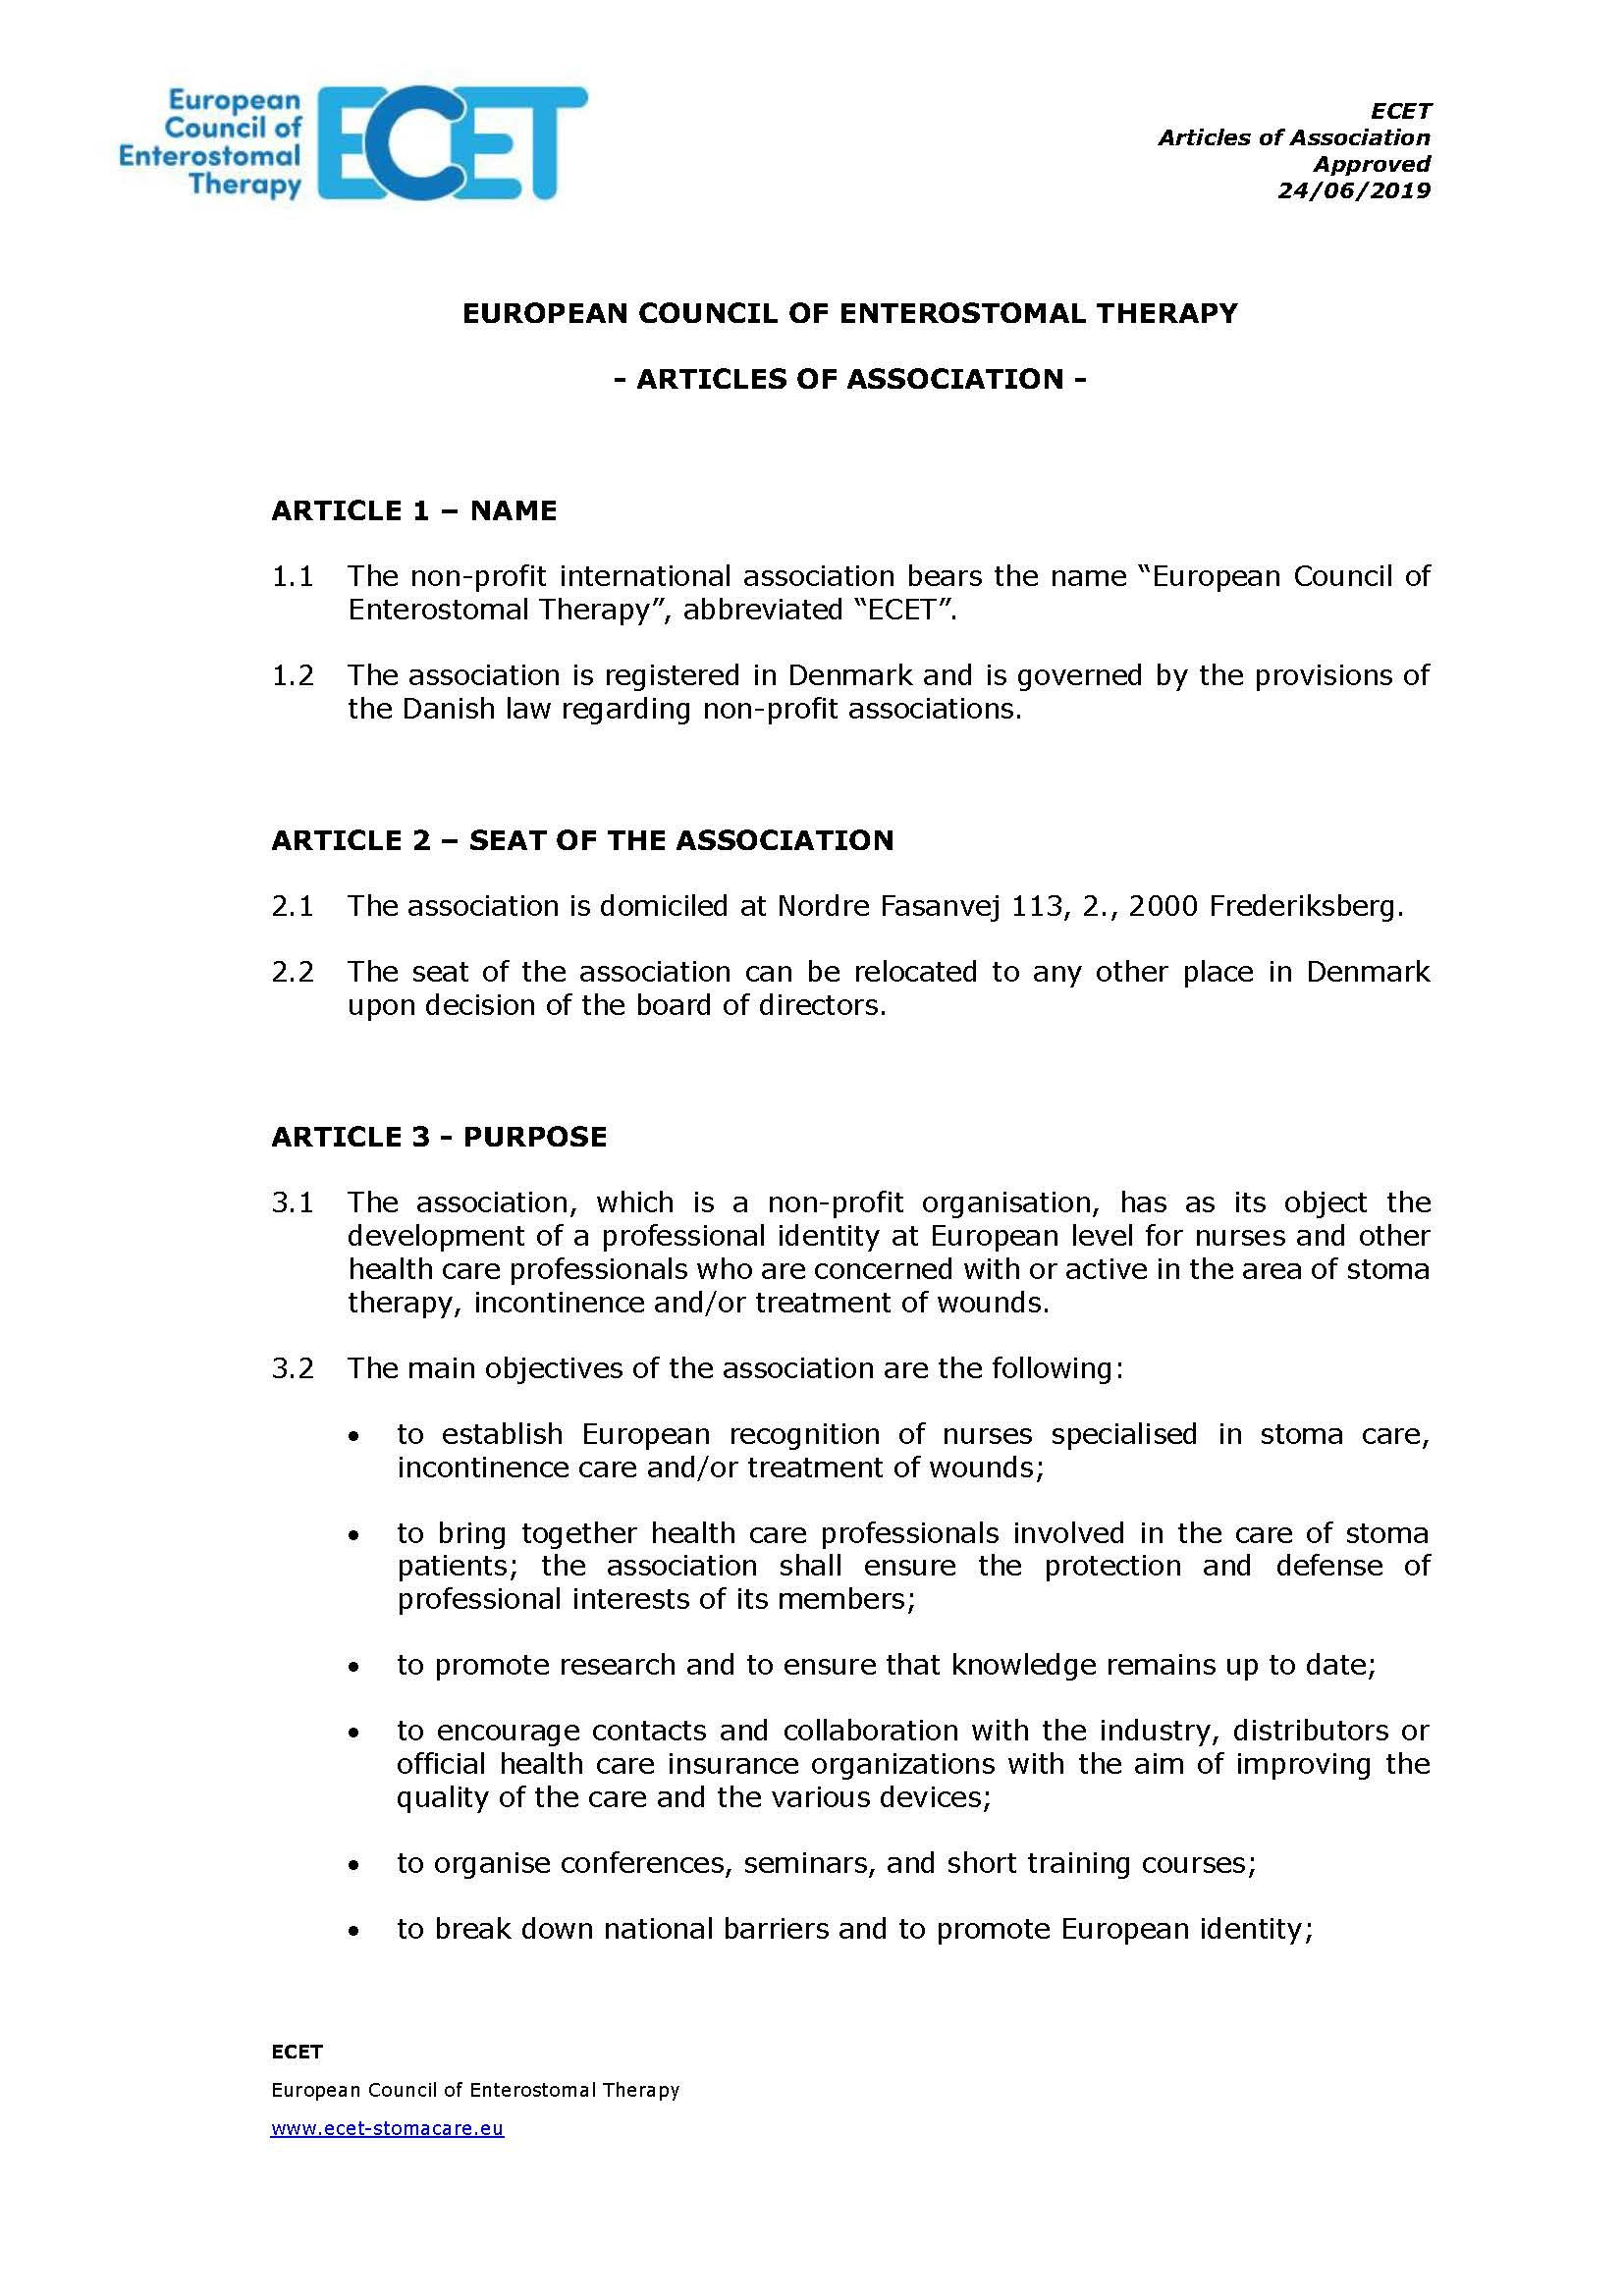 Download ECET Articles of Association